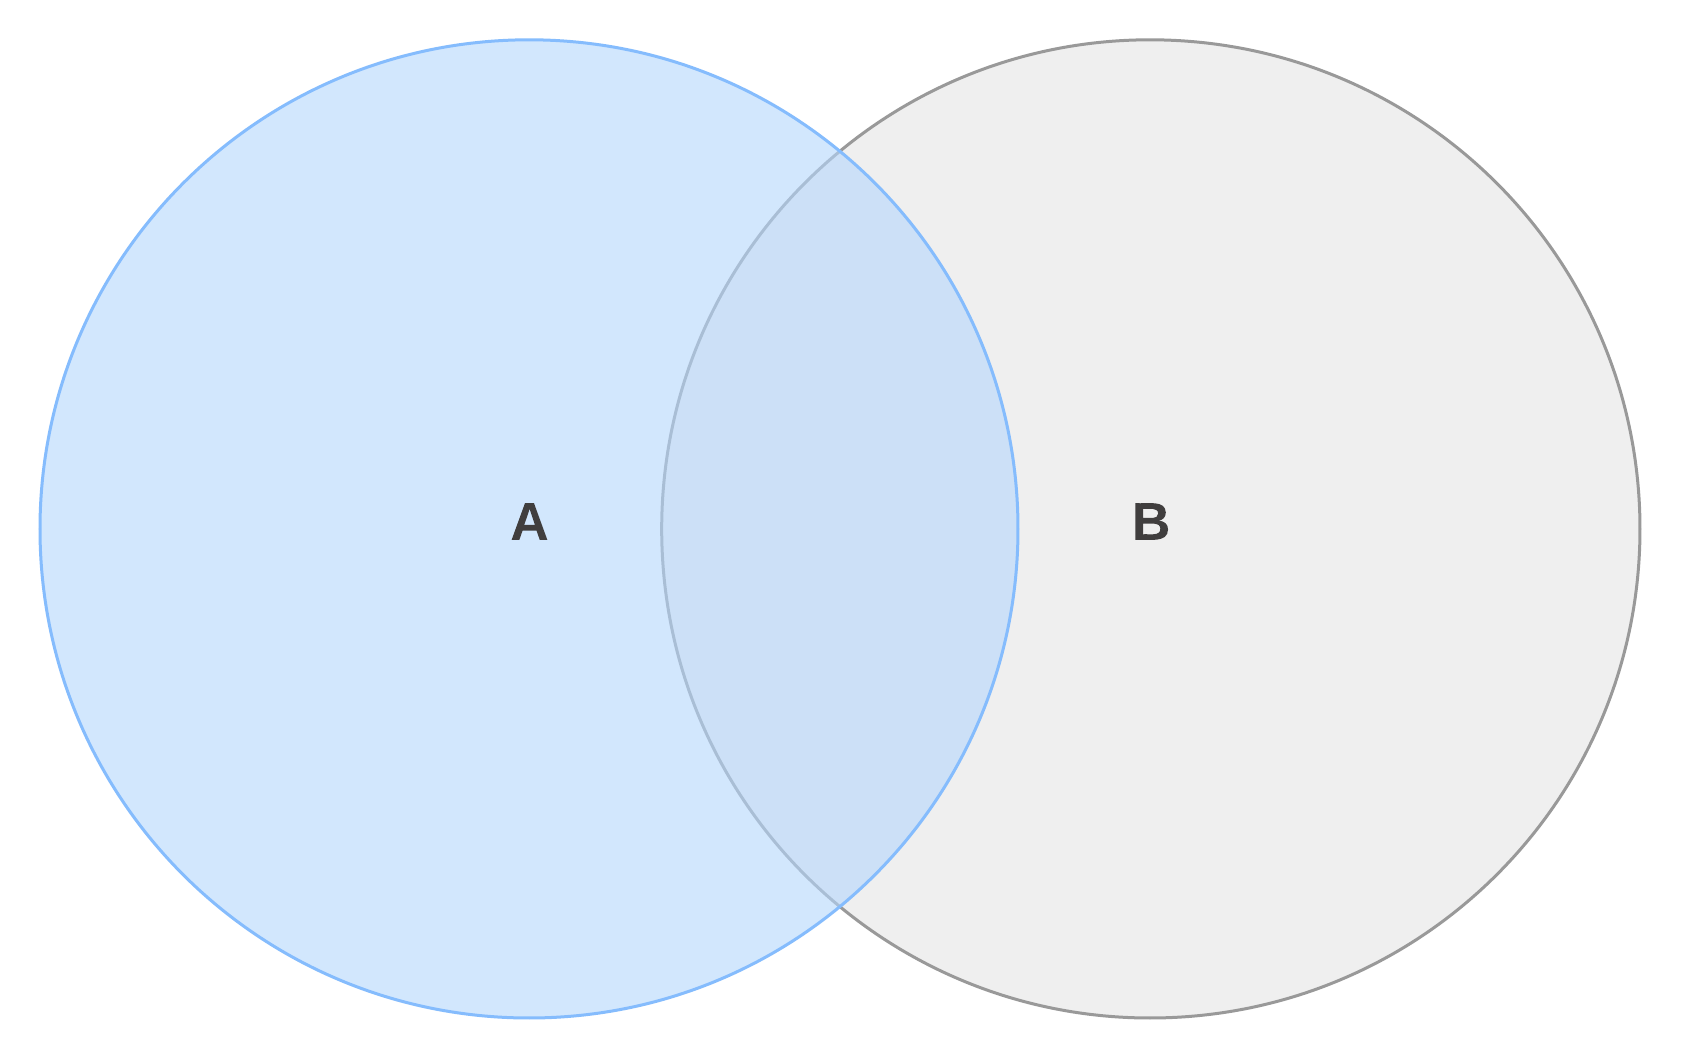 Venn diagram complement of a set